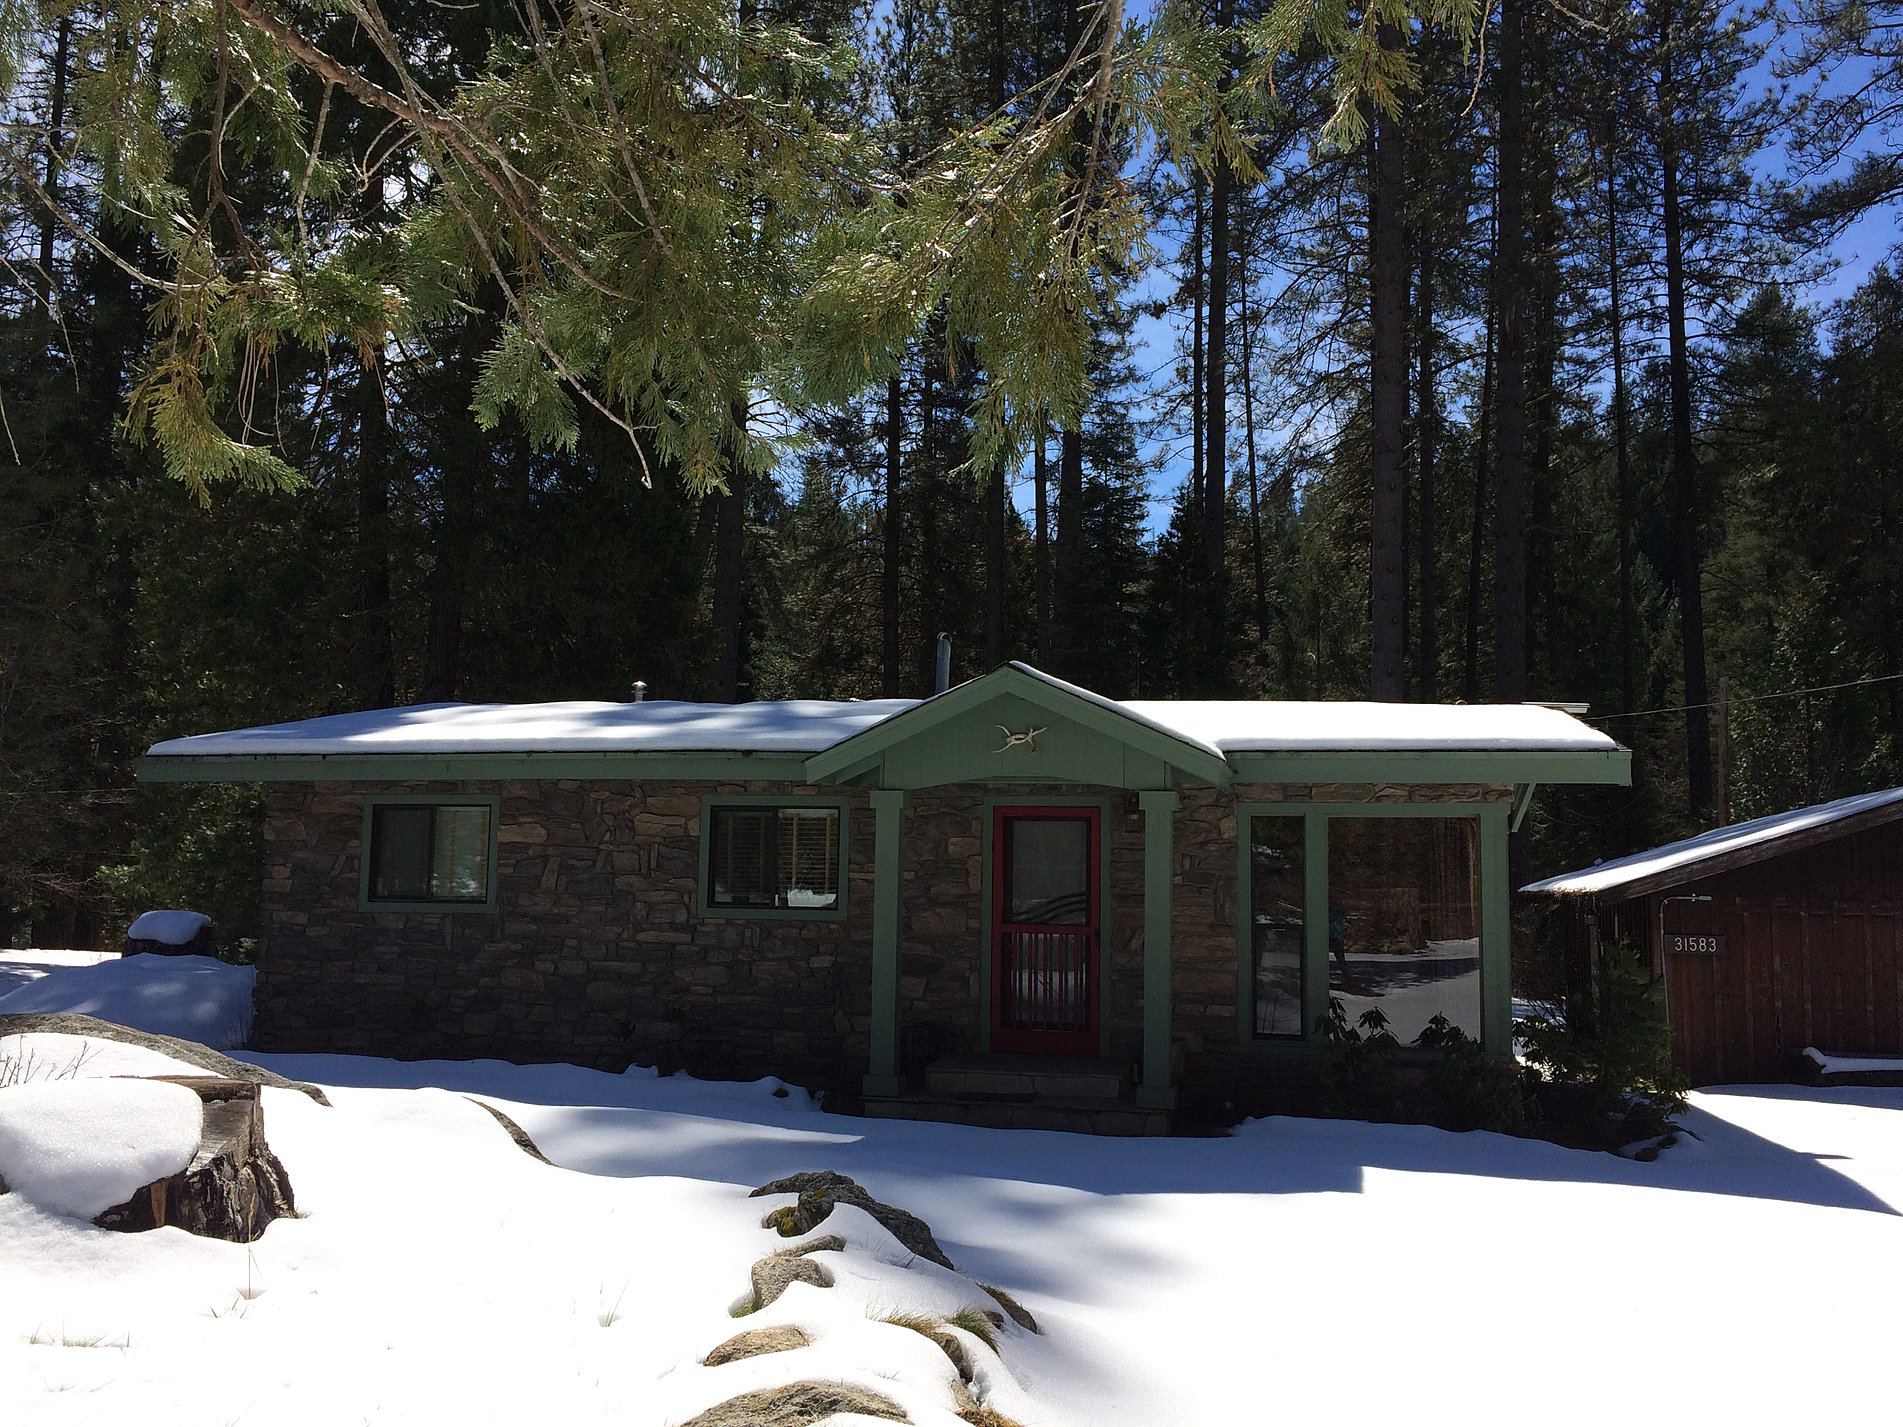 parks park luxury for rental lodging of rent in campground yosemite cabins national united states